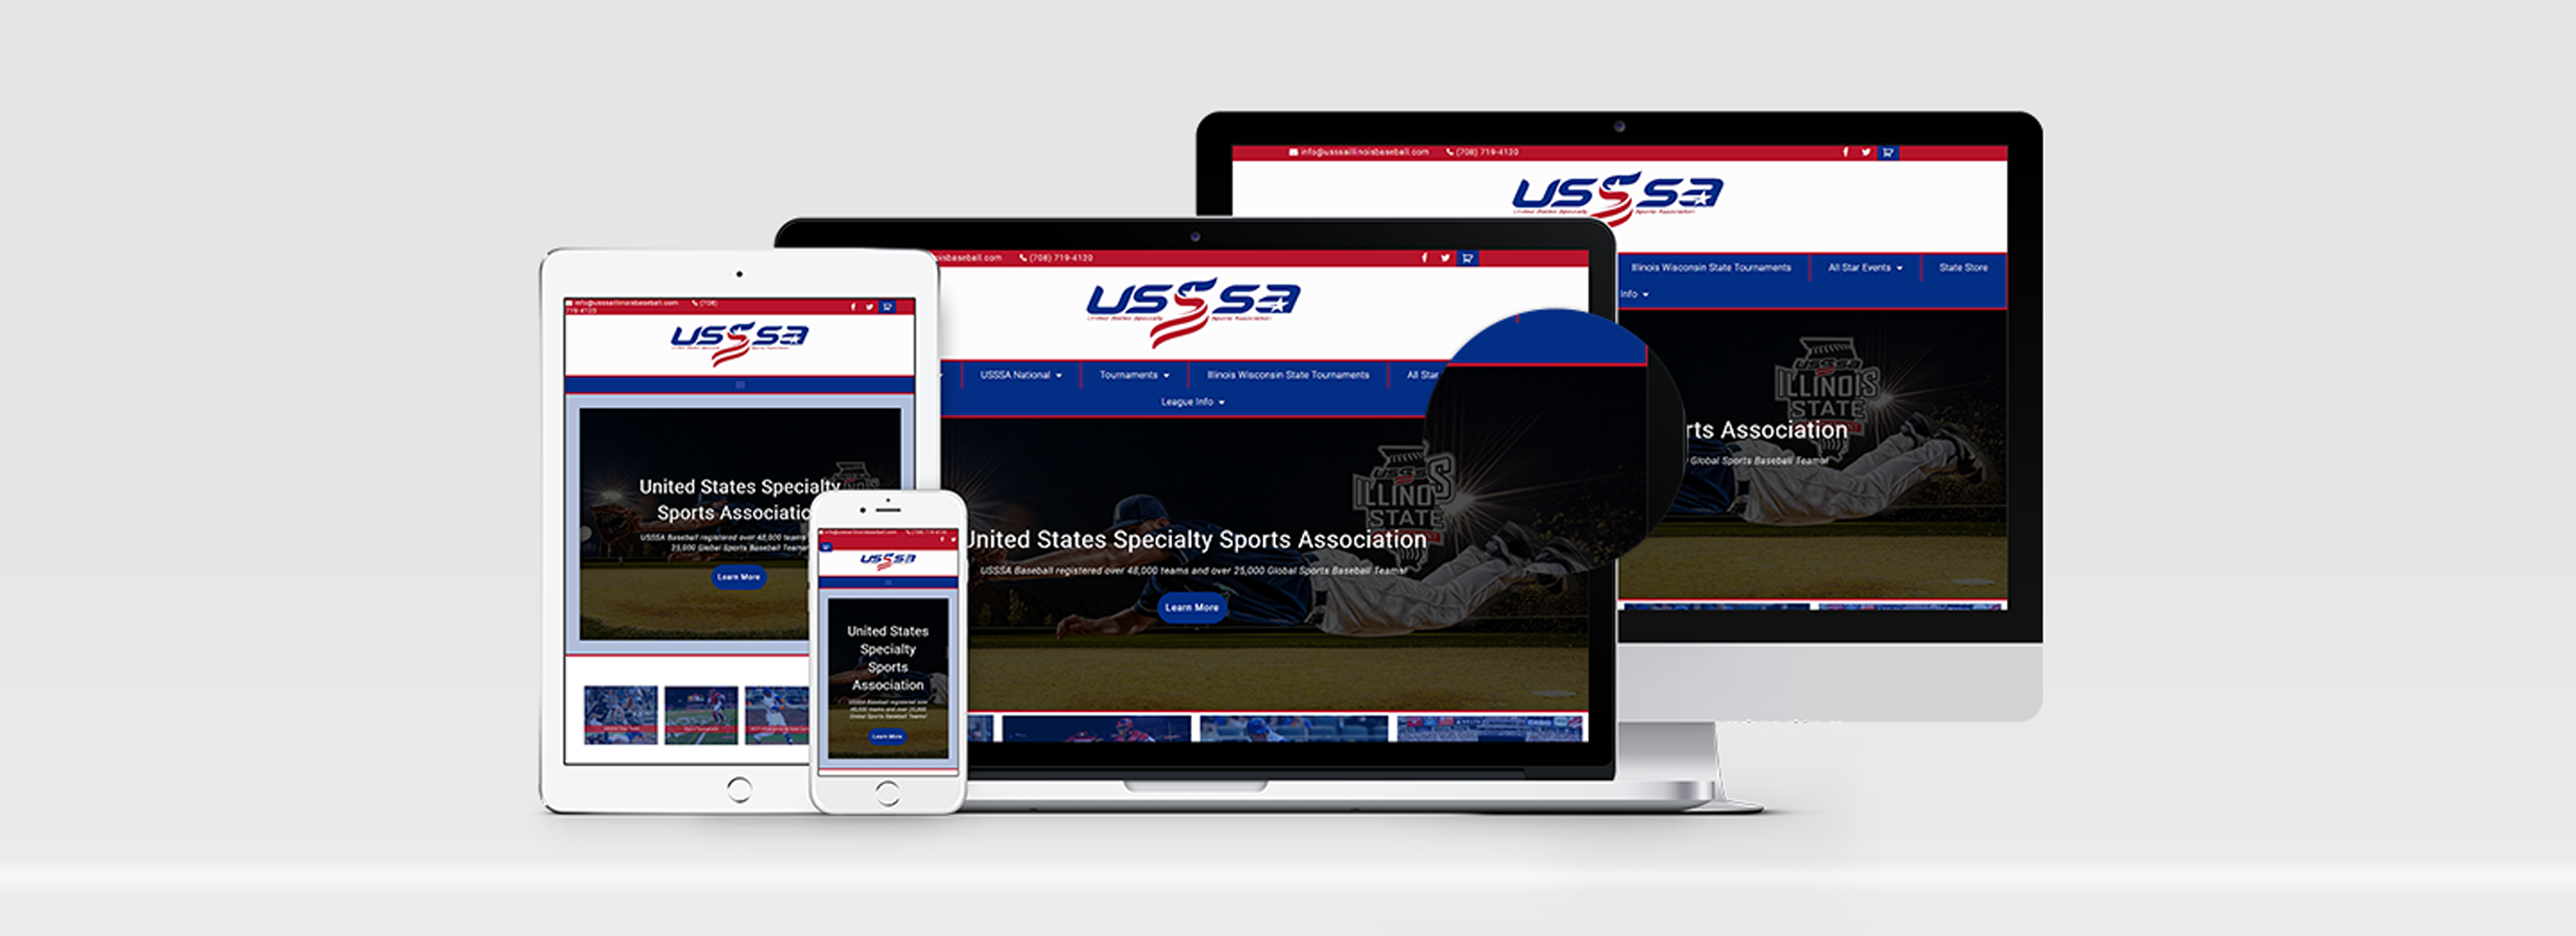 United States Specialty Sports Association